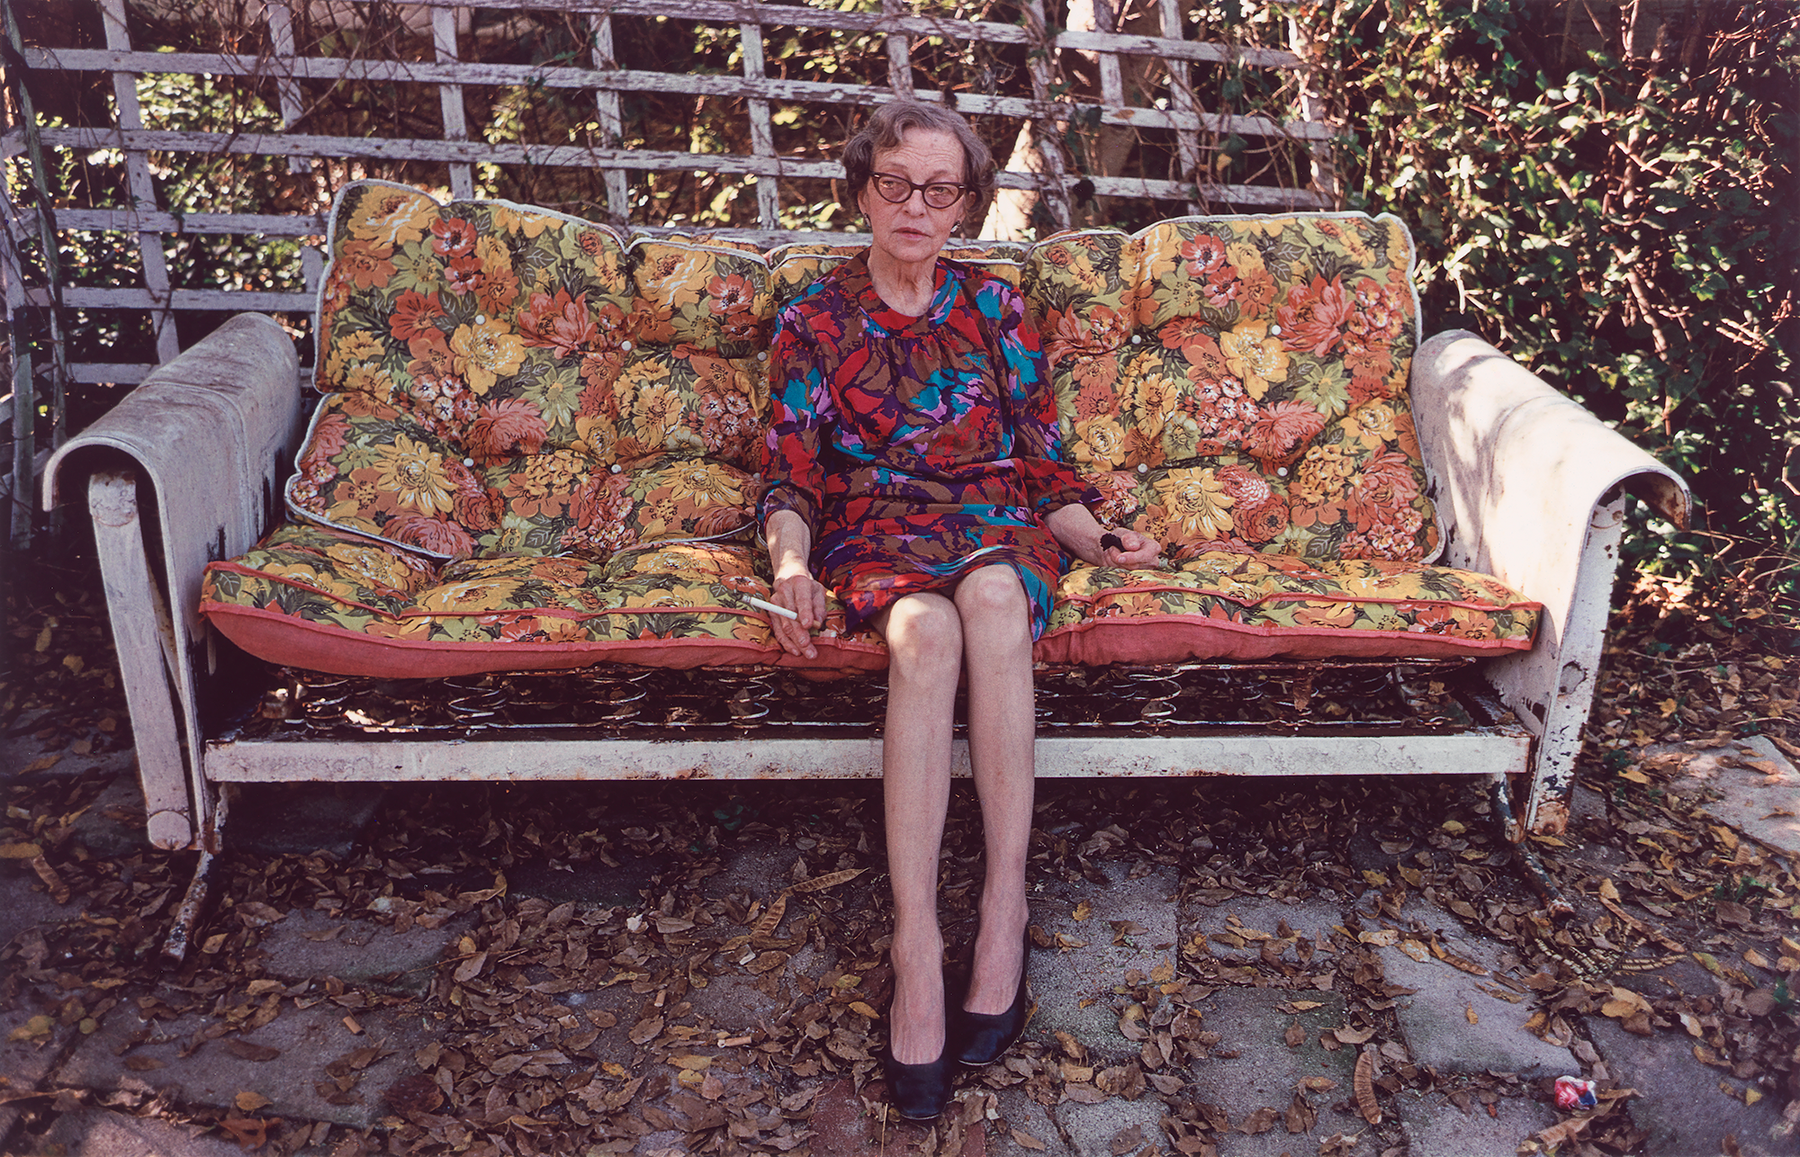 An elderly seated woman smoking a cigarette on a worn out floral print couch in an unkempt patio